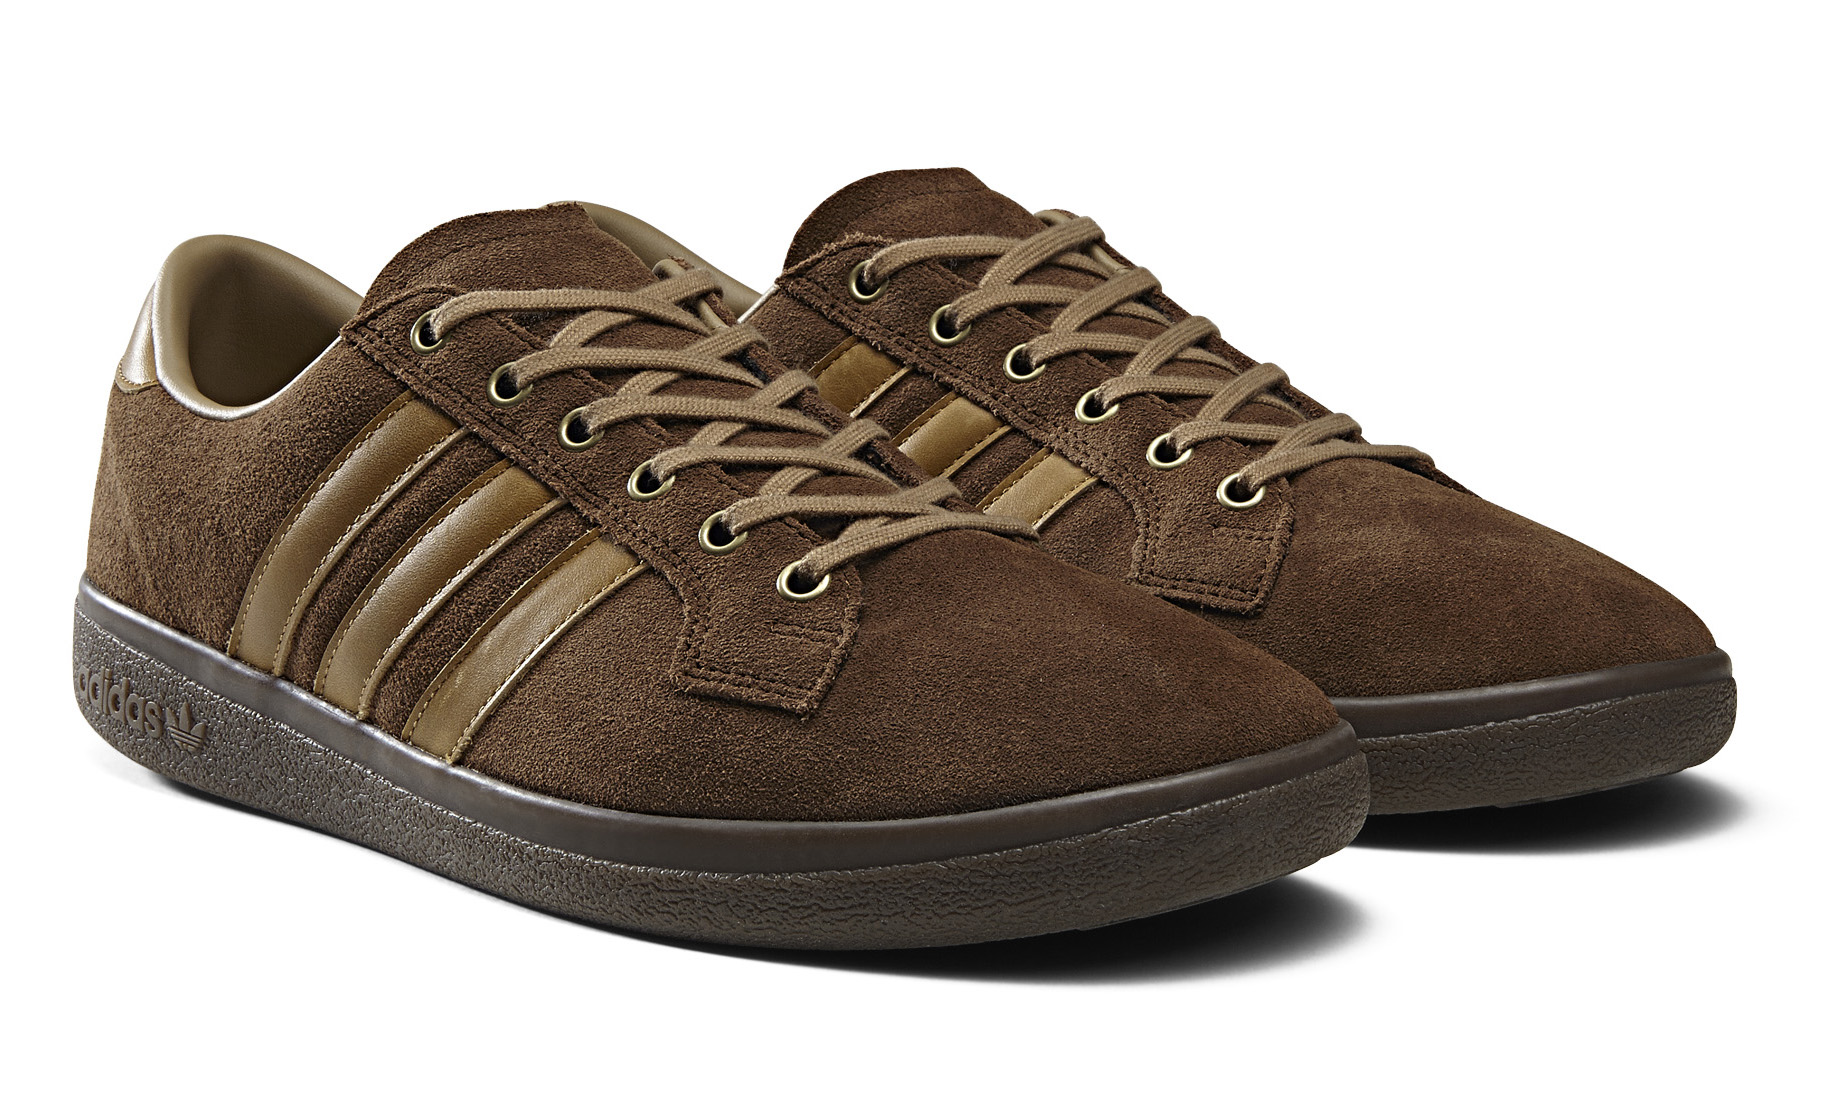 Adidas Spezial Bulhill Brown